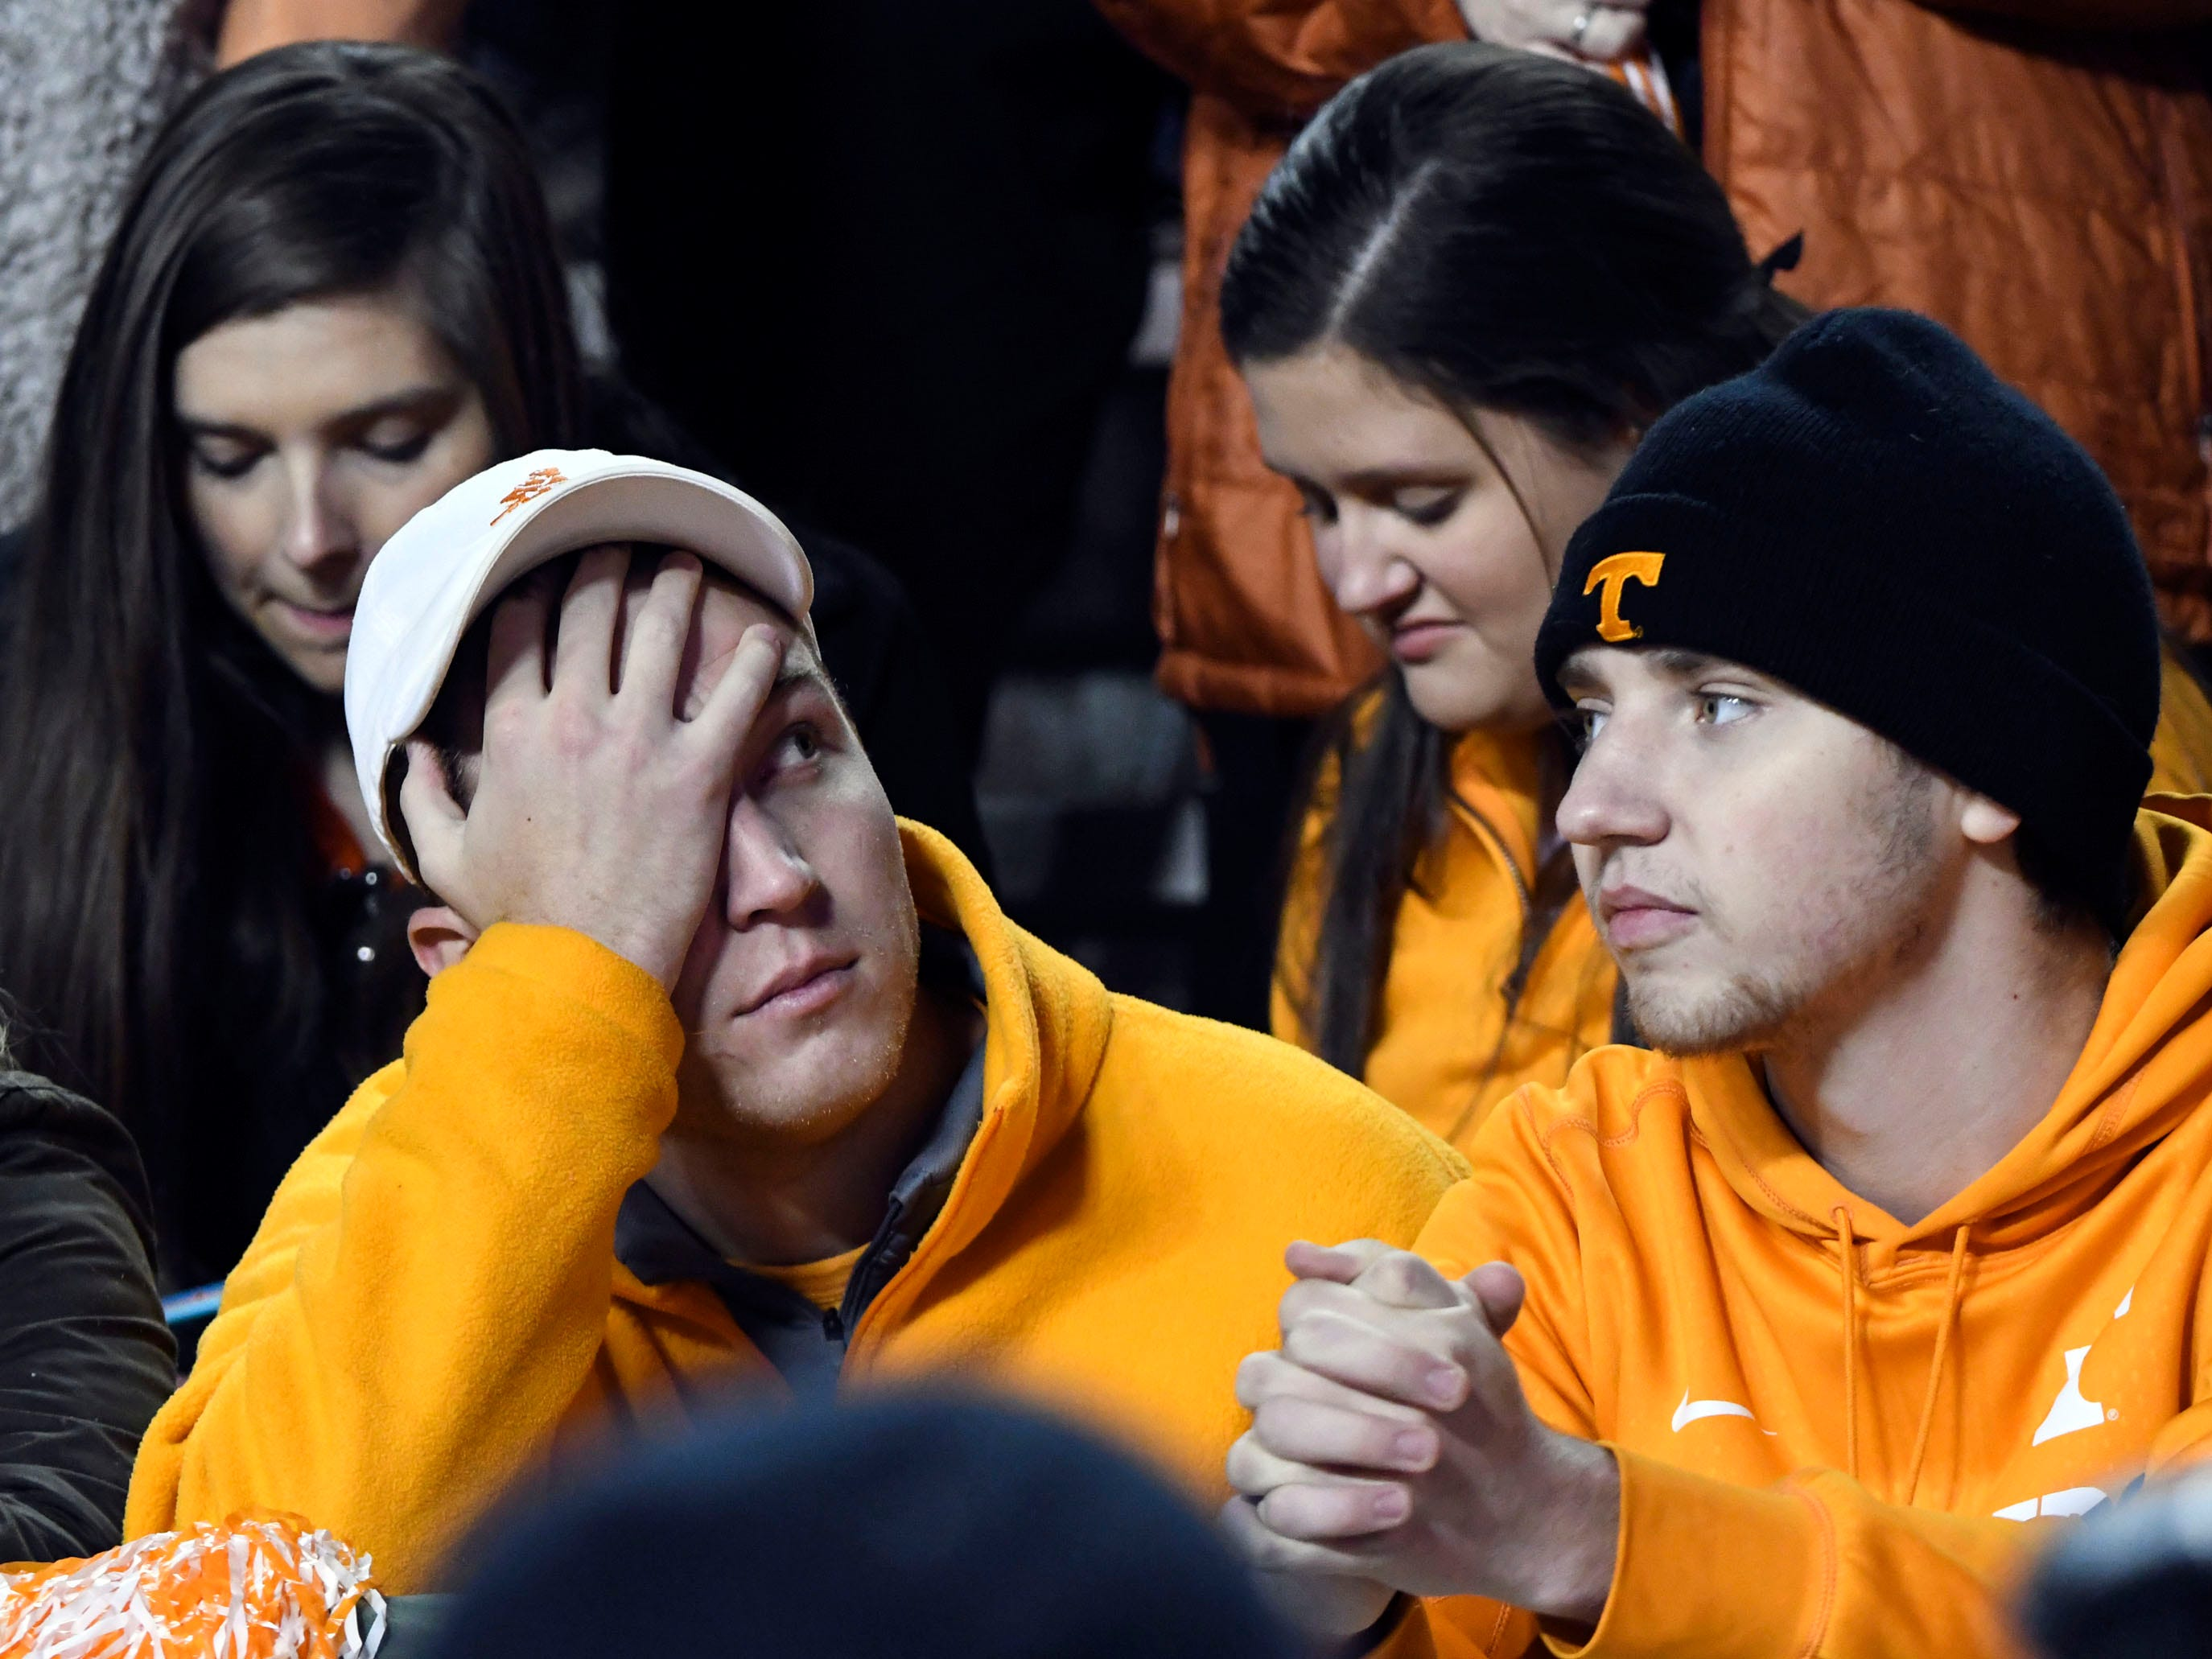 Tennessee fans shows his displeasure during the Tennessee and Missouri football game on Saturday, November 17, 2018.